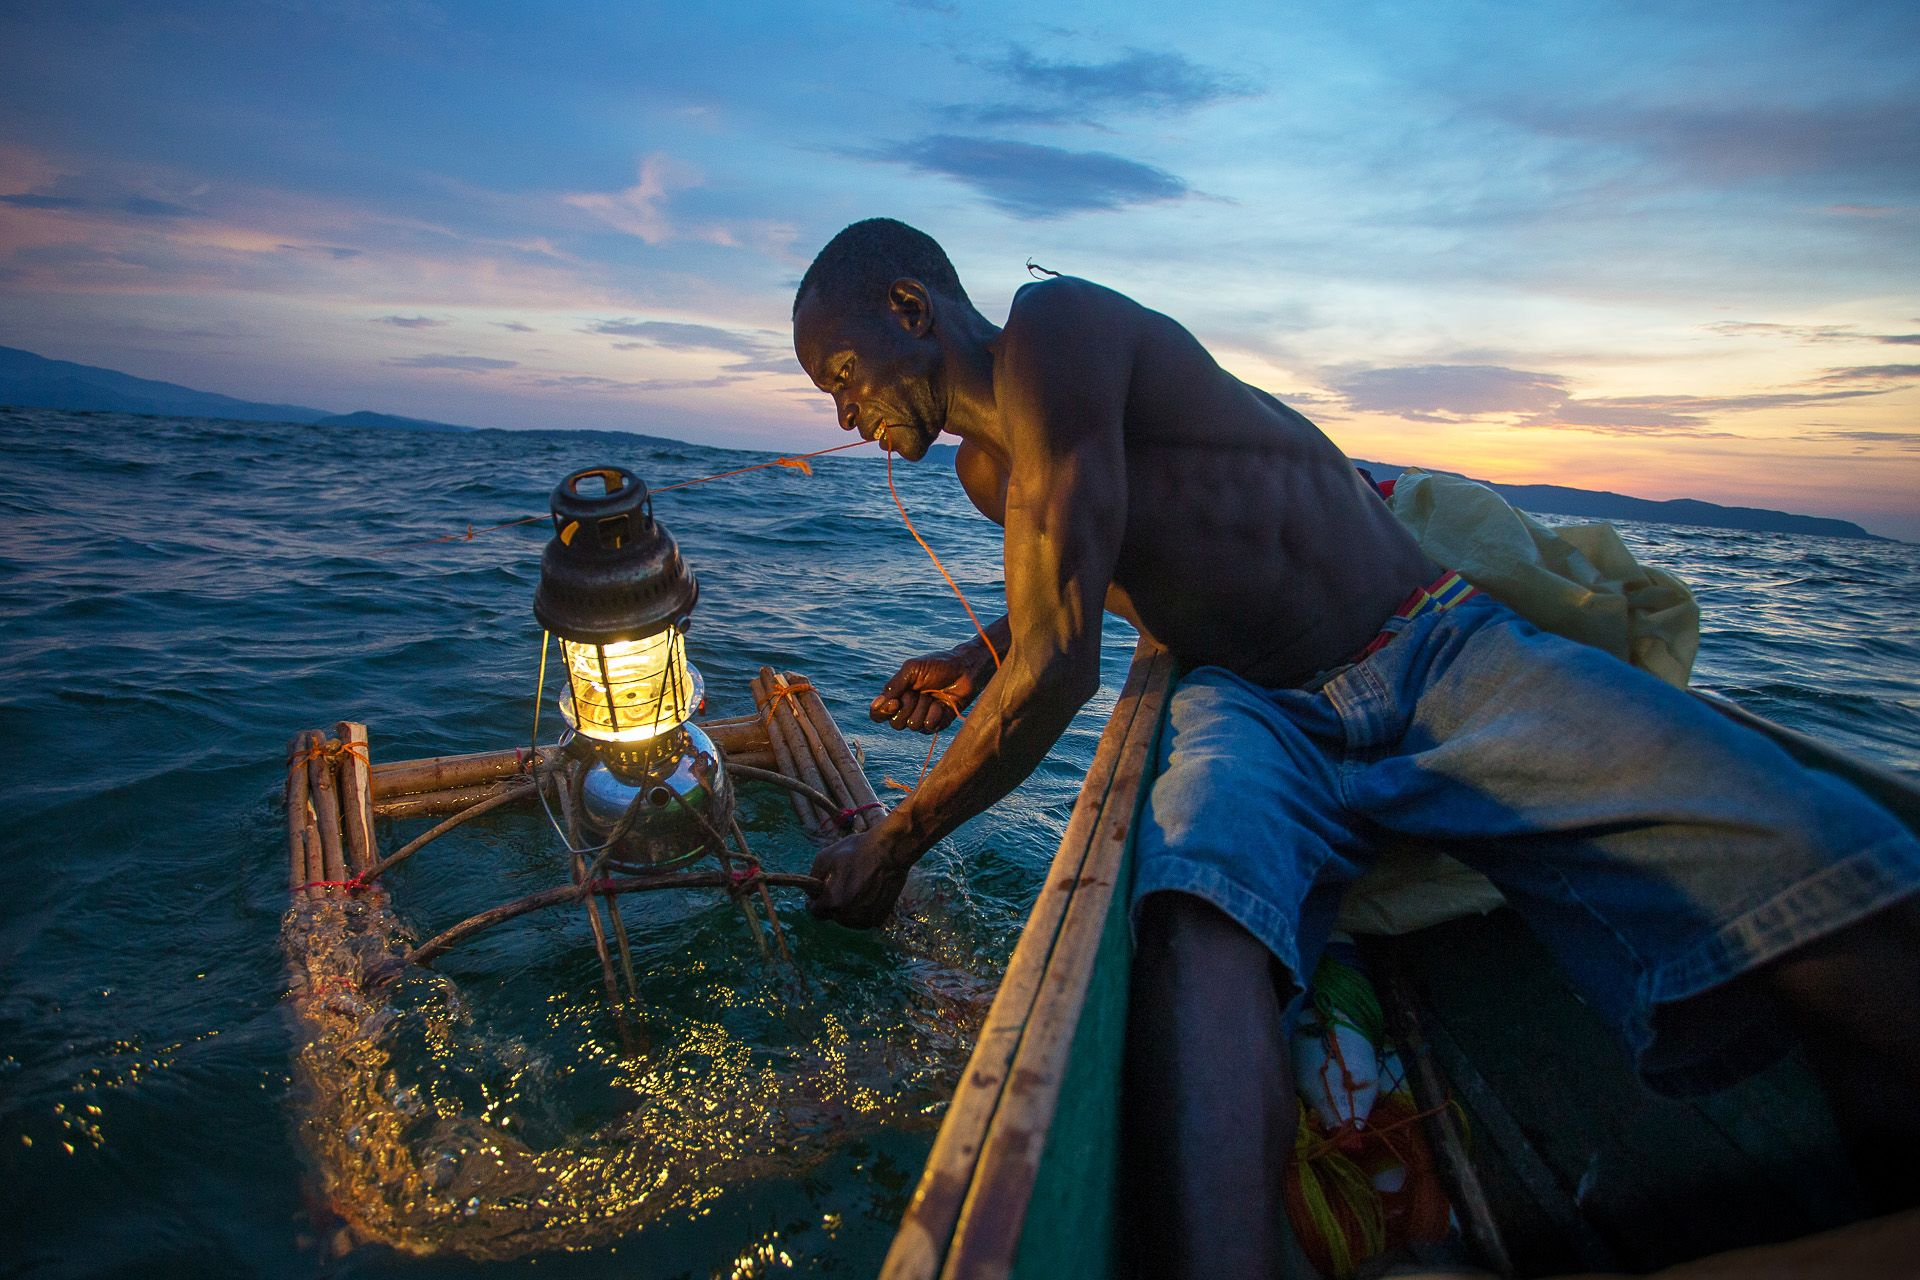 Fishing with lights